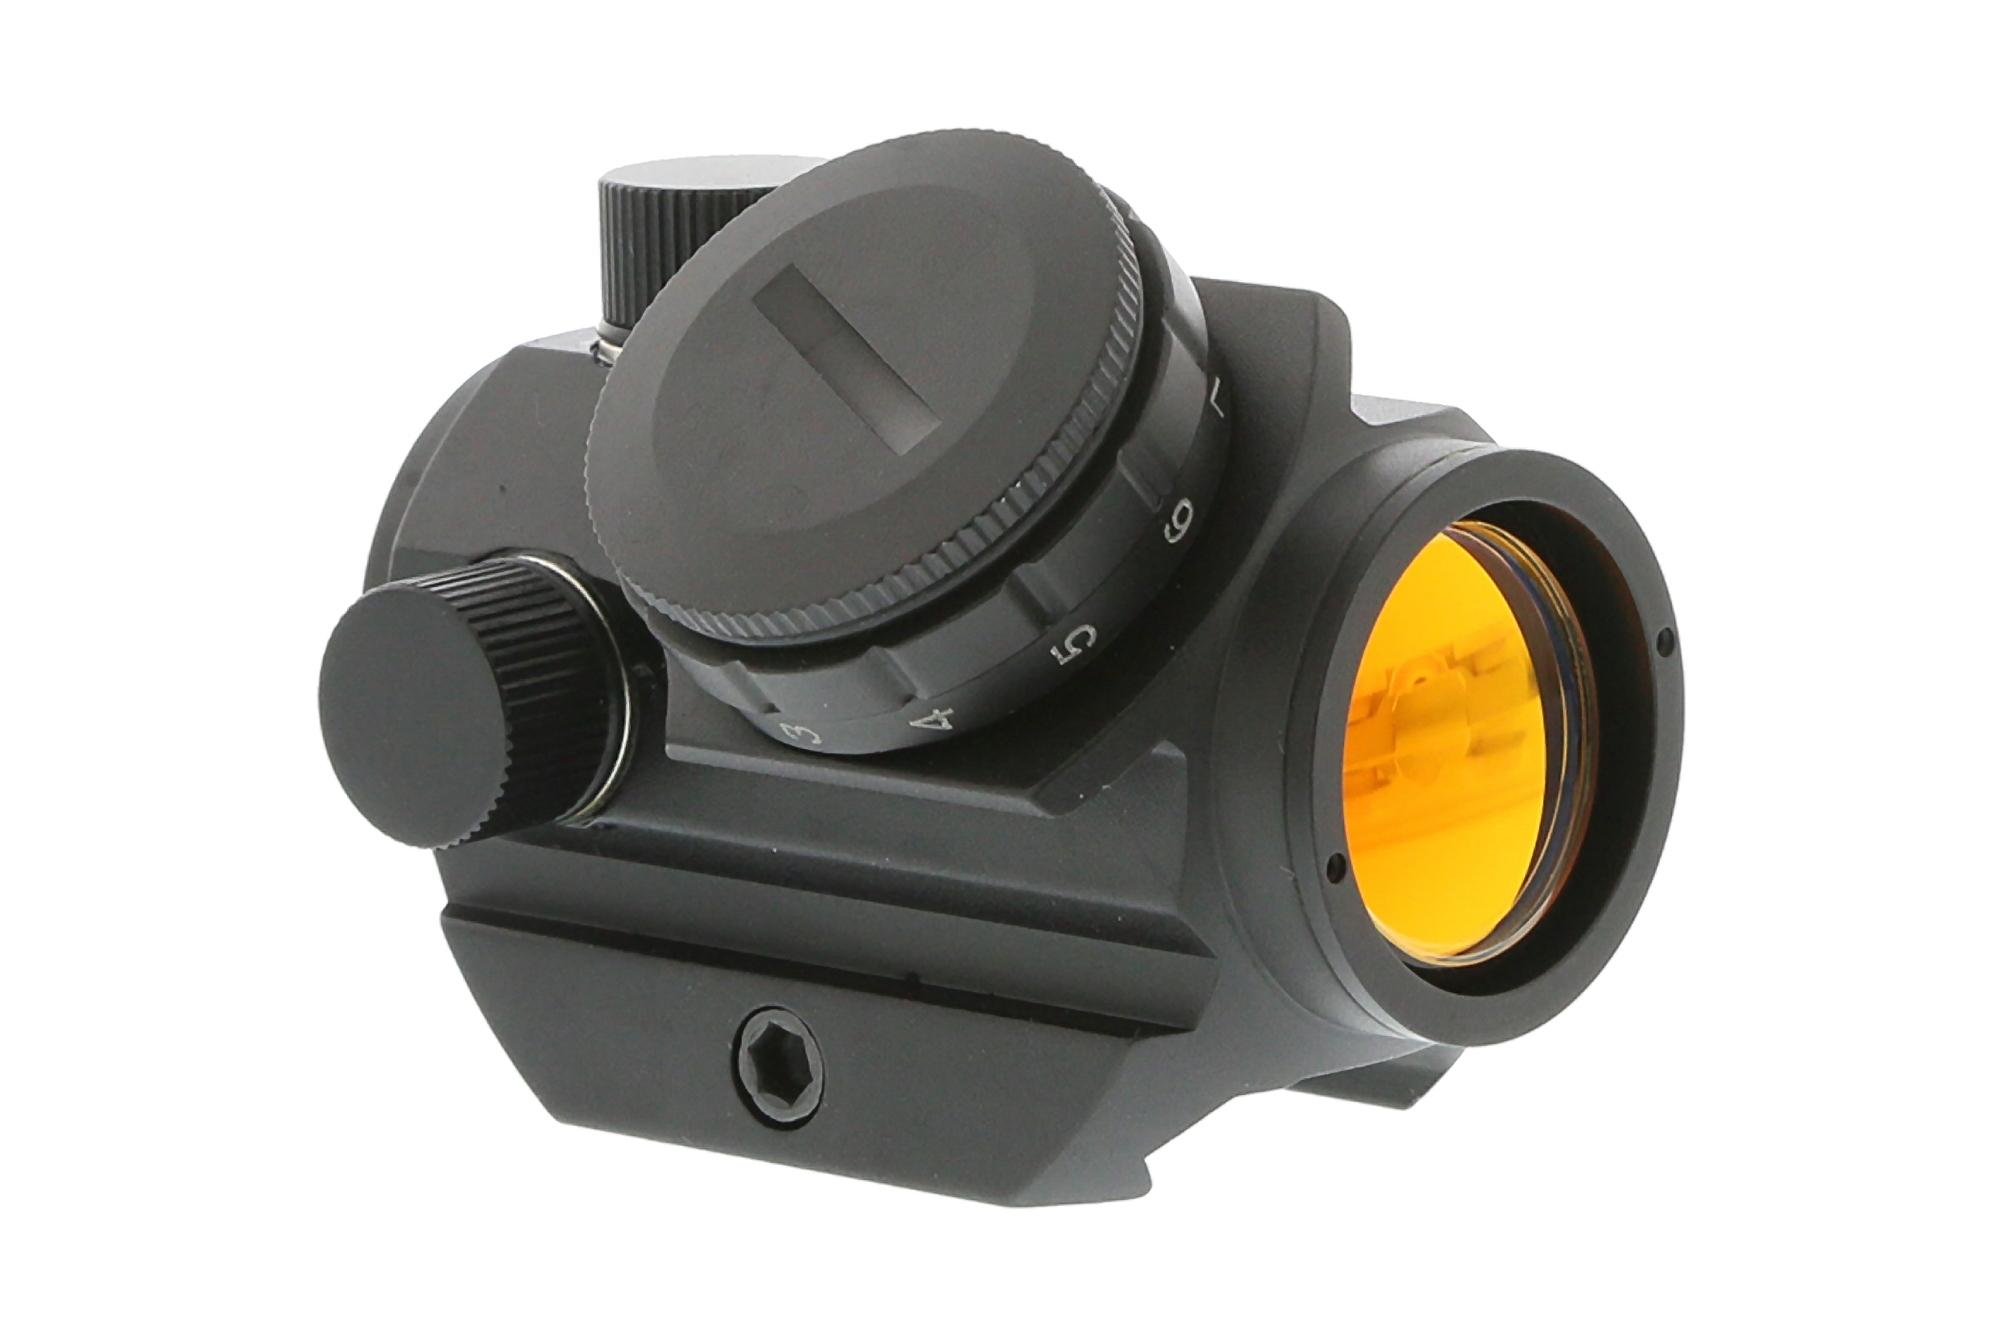 Bushnell Trs 25 Red Dot Sight 1x25mm 3 Moa Bs731303